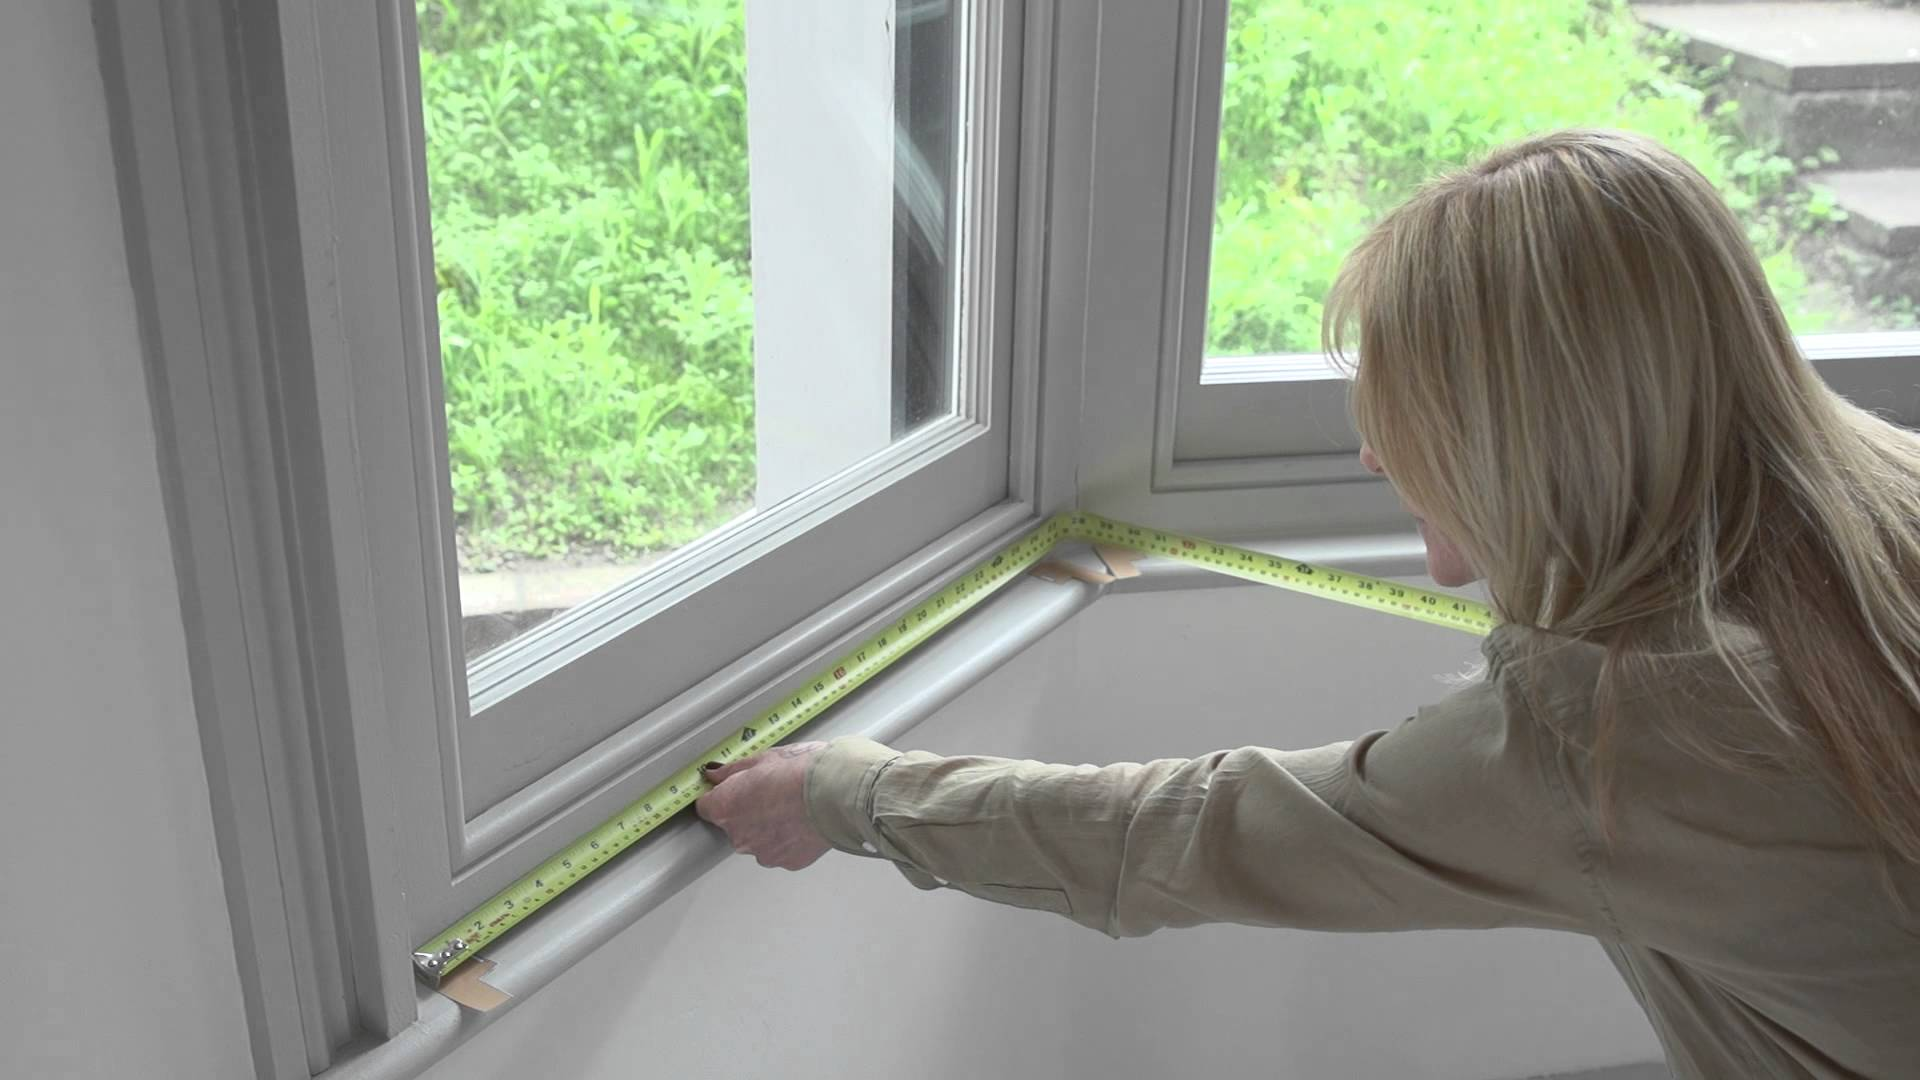 How to measure a bay window for new curtain hardware